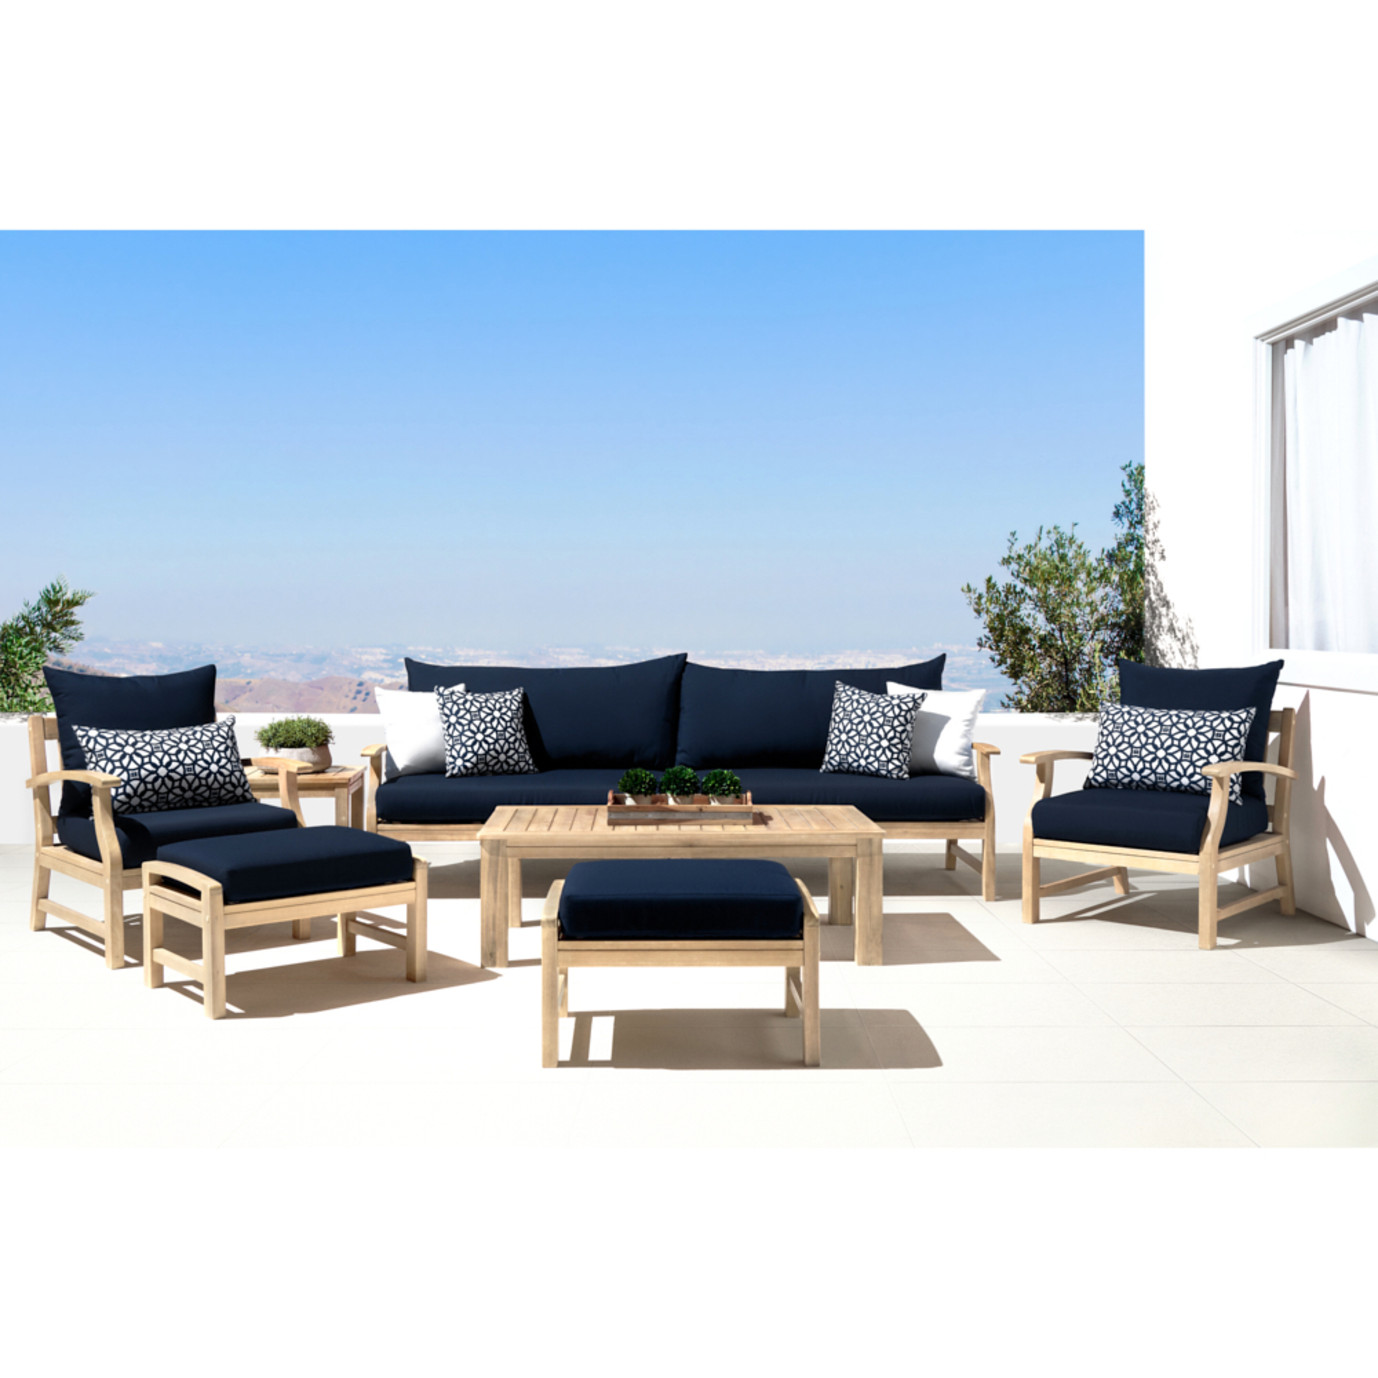 Kooper 8pc Sofa & Club Chair Set - Navy Blue